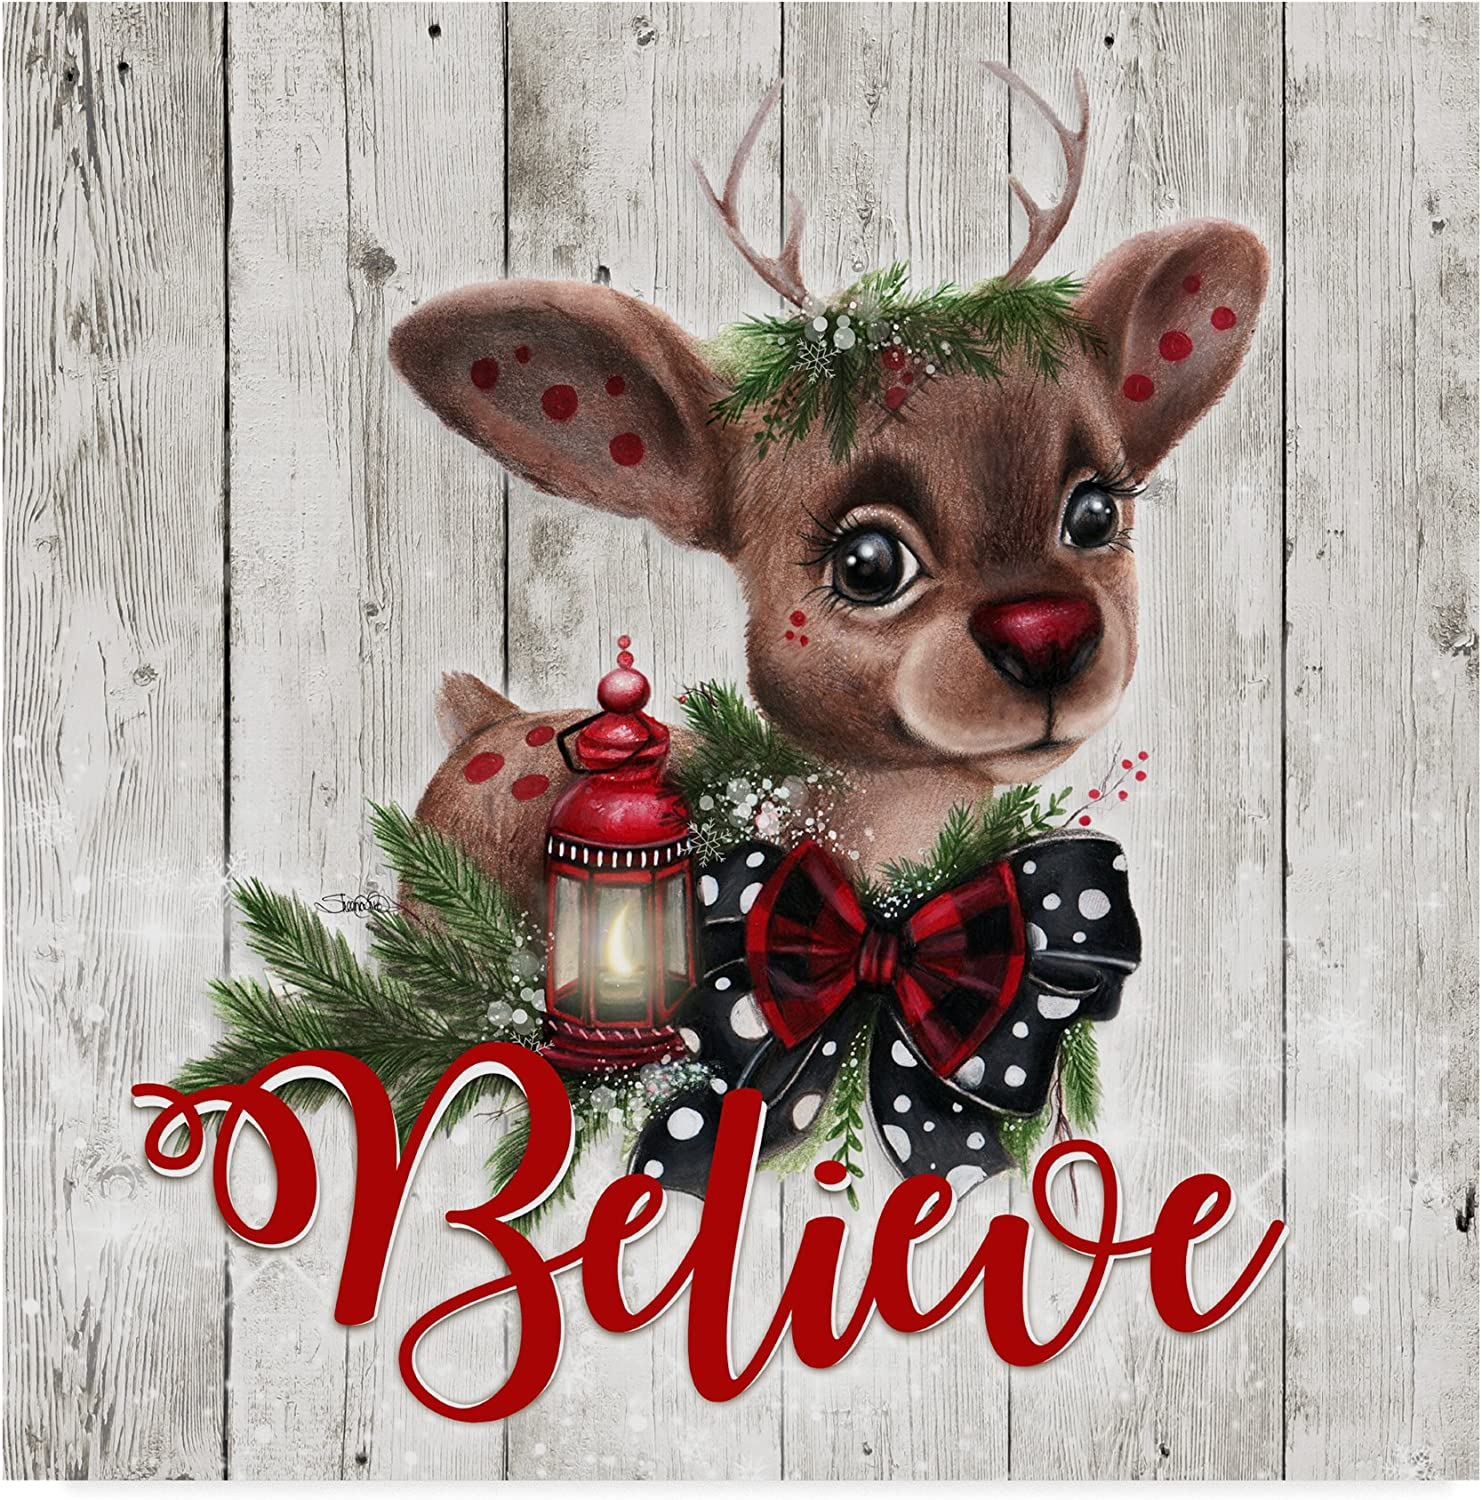 Rudolph by Sheena Pike Art And Illustration, 14x14-Inch